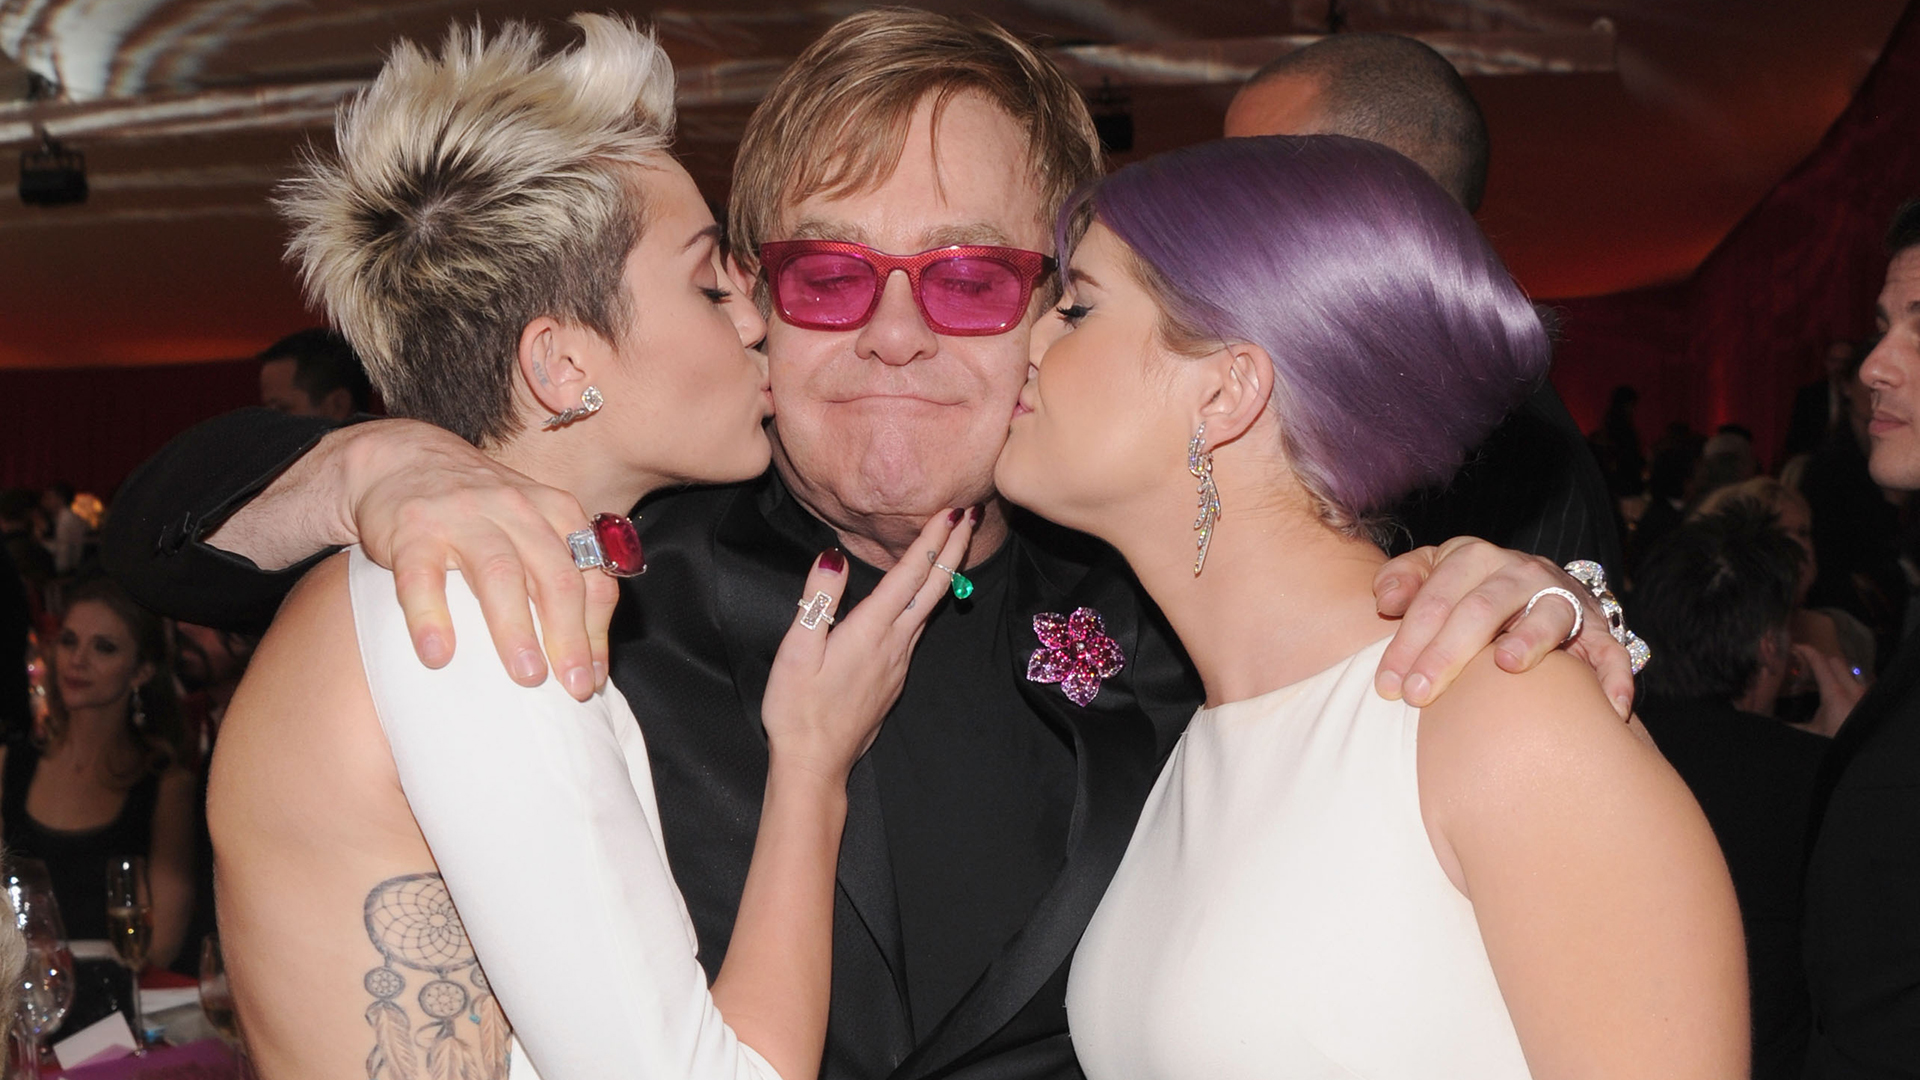 Miley Cyrus, Elton John and Kelly Osbourne at the 2013 Elton John party